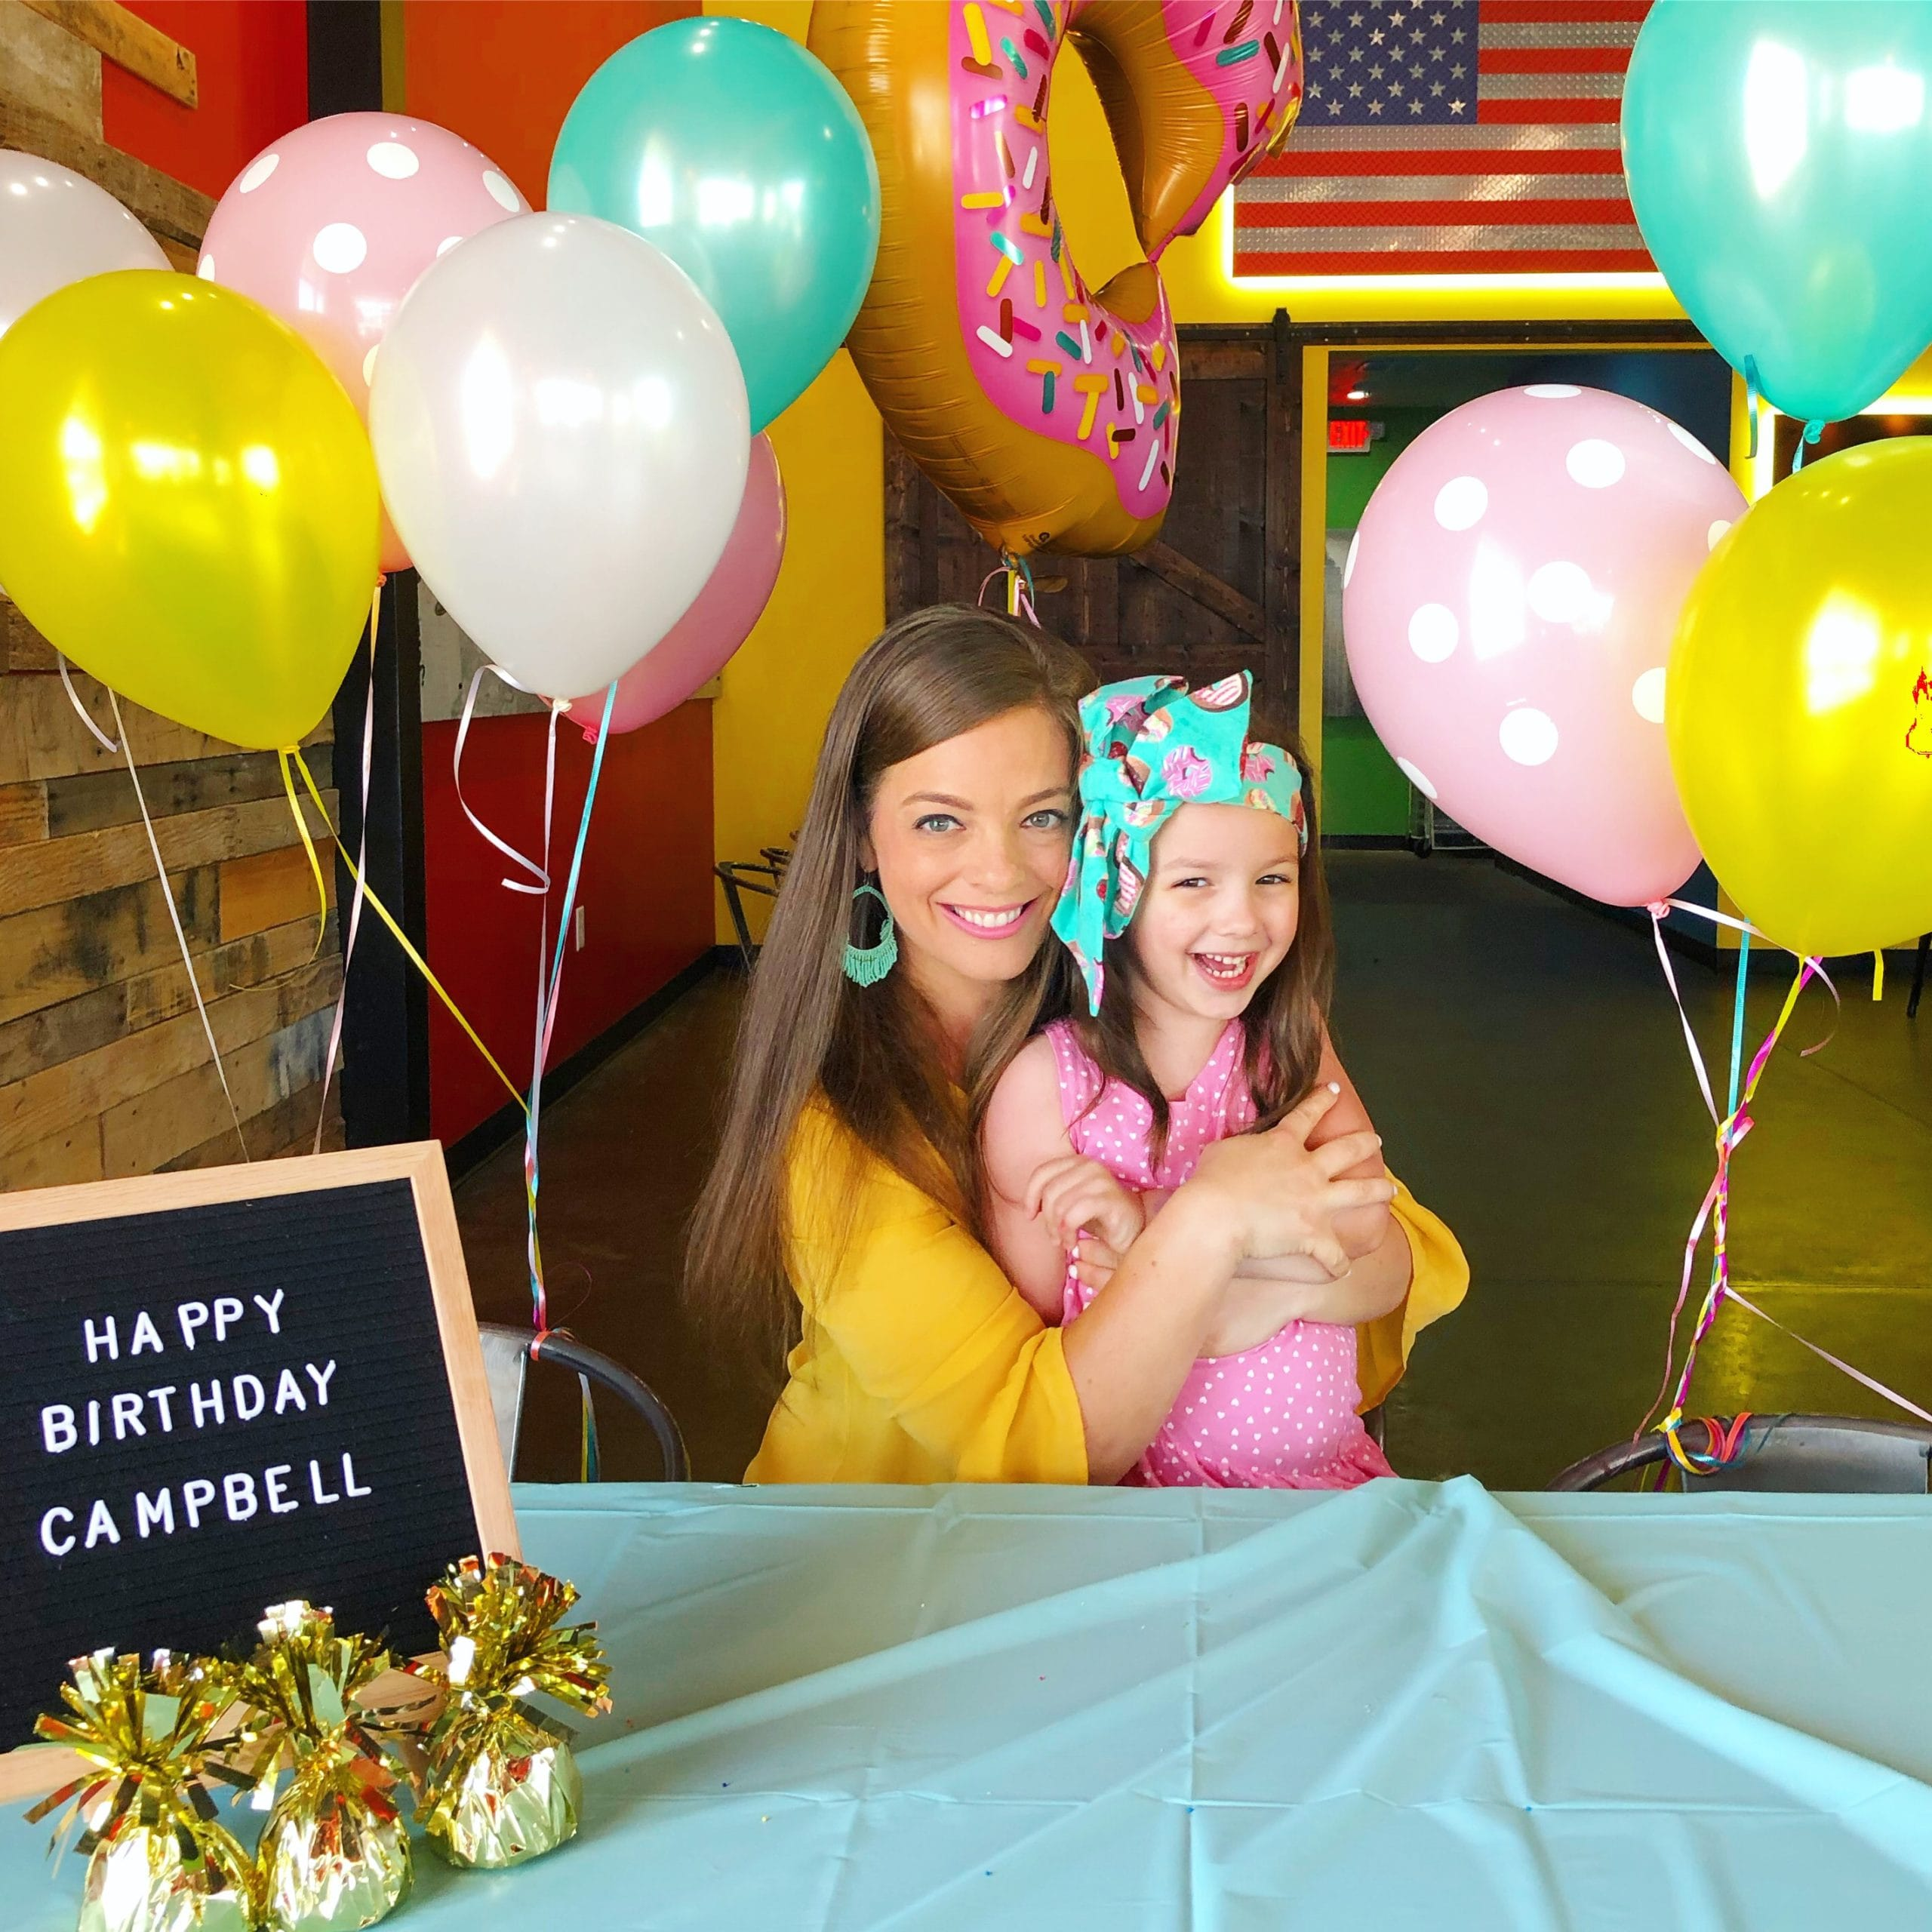 Stephanie Hanrahan and daughter Campbell's birthday party